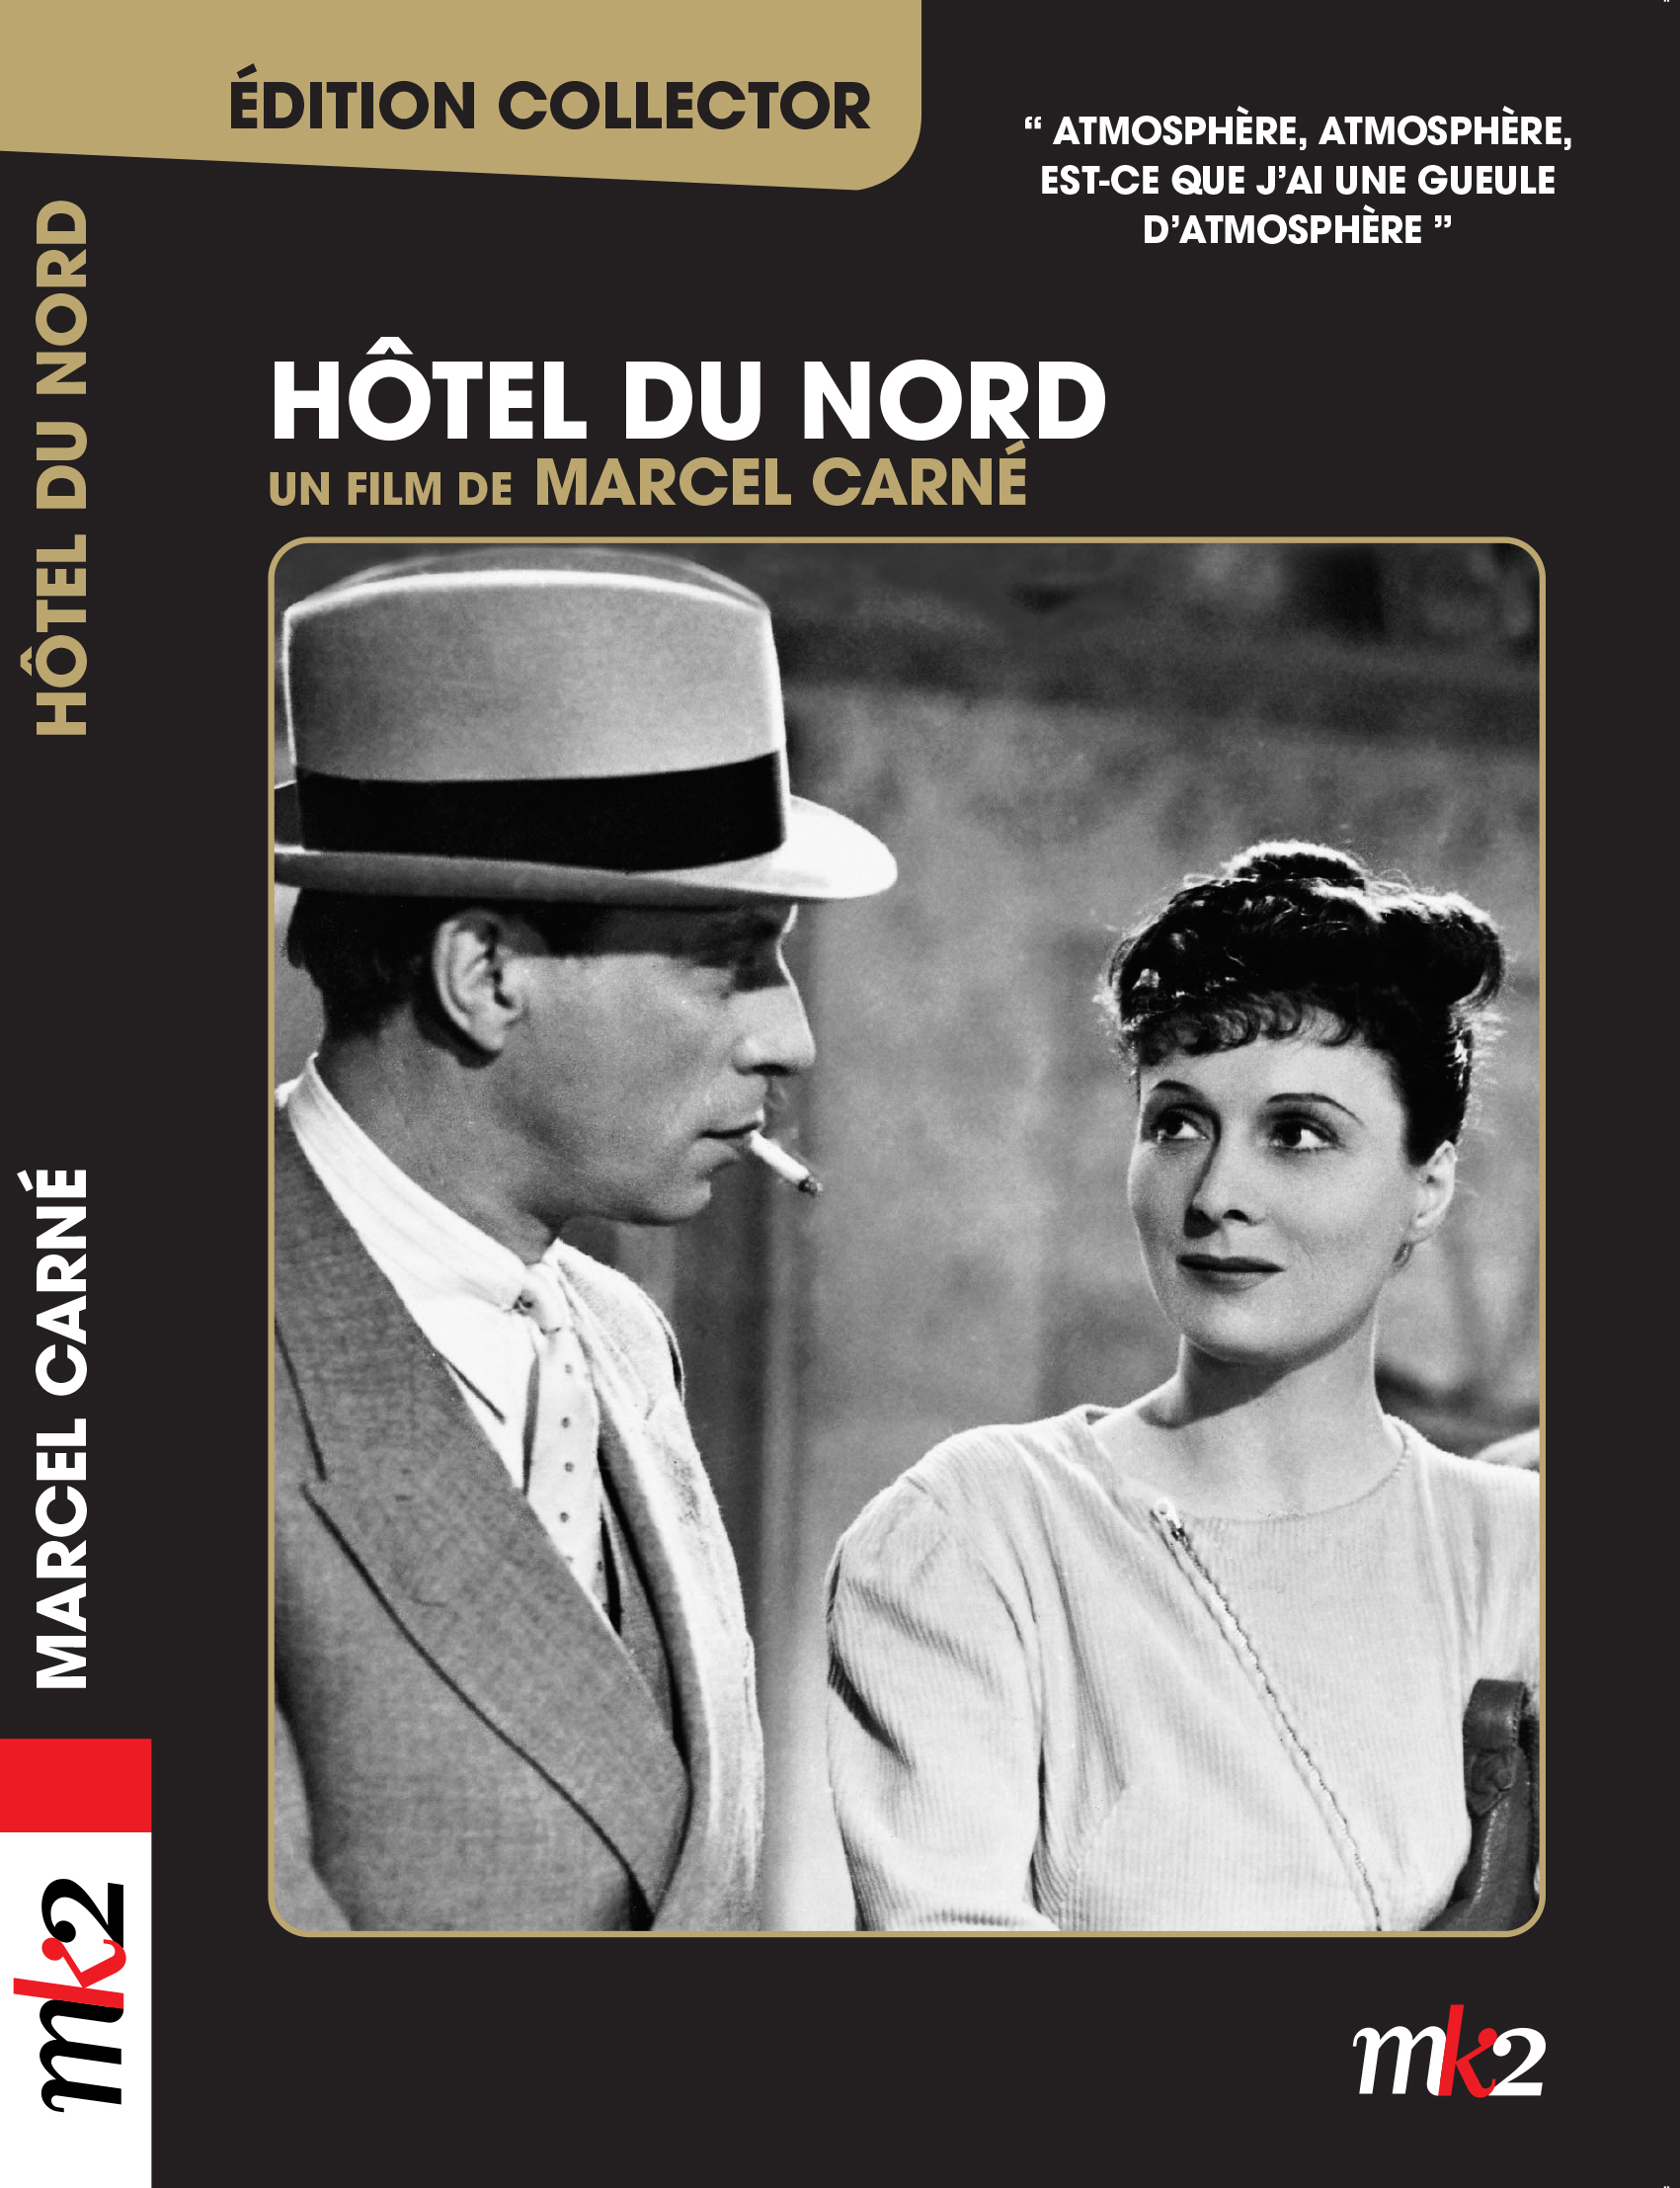 HOTEL DU NORD EDITION COLLECTOR - DVD